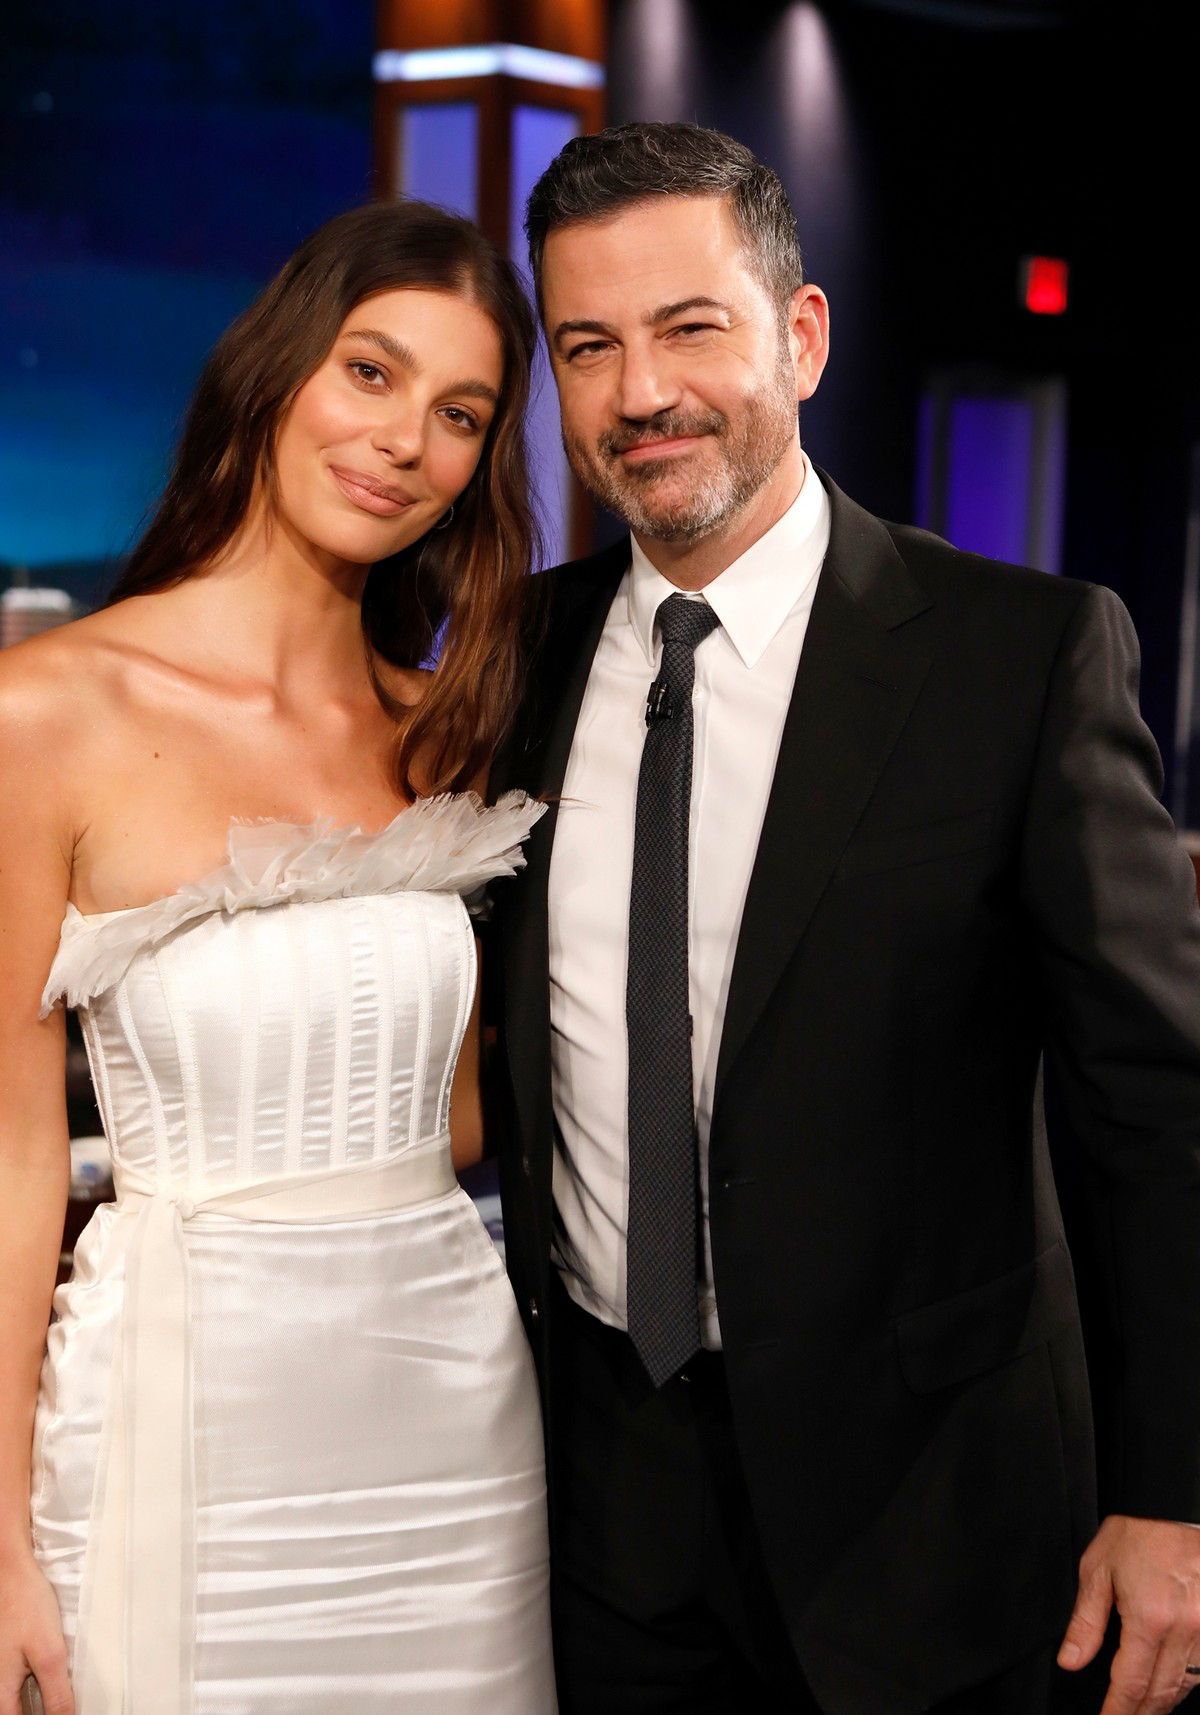 Camila Morrone attends Jimmy Kimmel Live! in Hollywood 2019/11/15 3